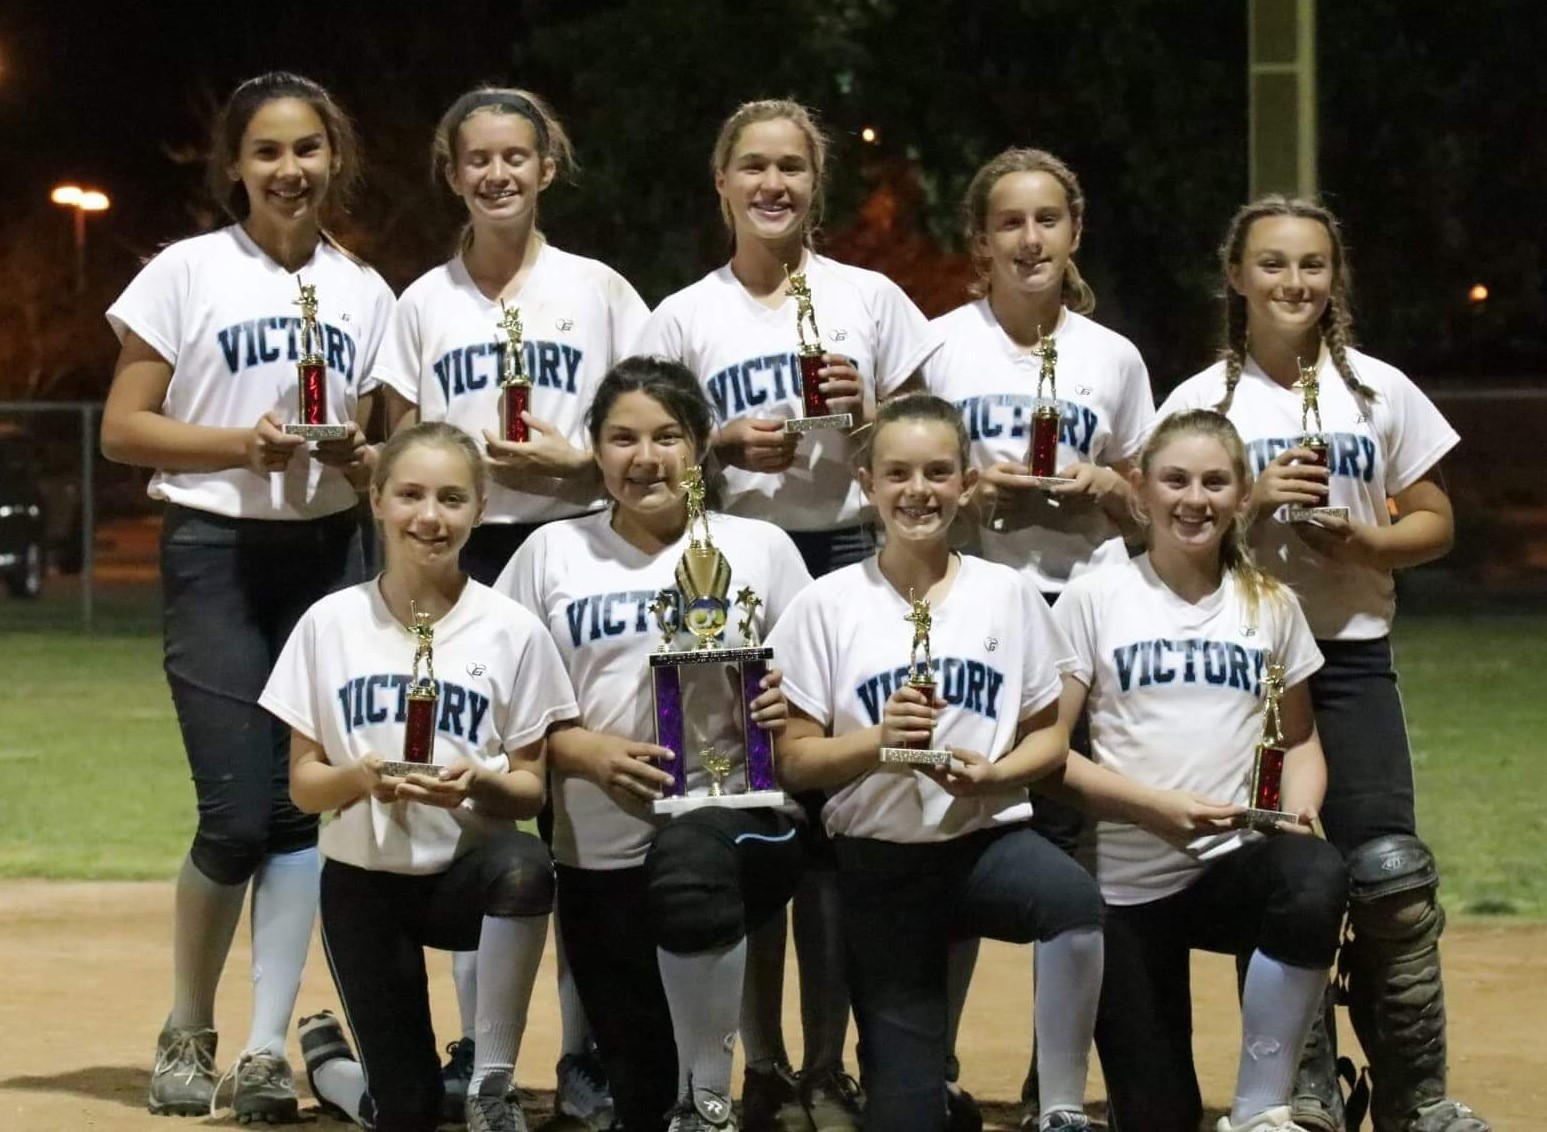 12u Gold - Runner Up - Victory